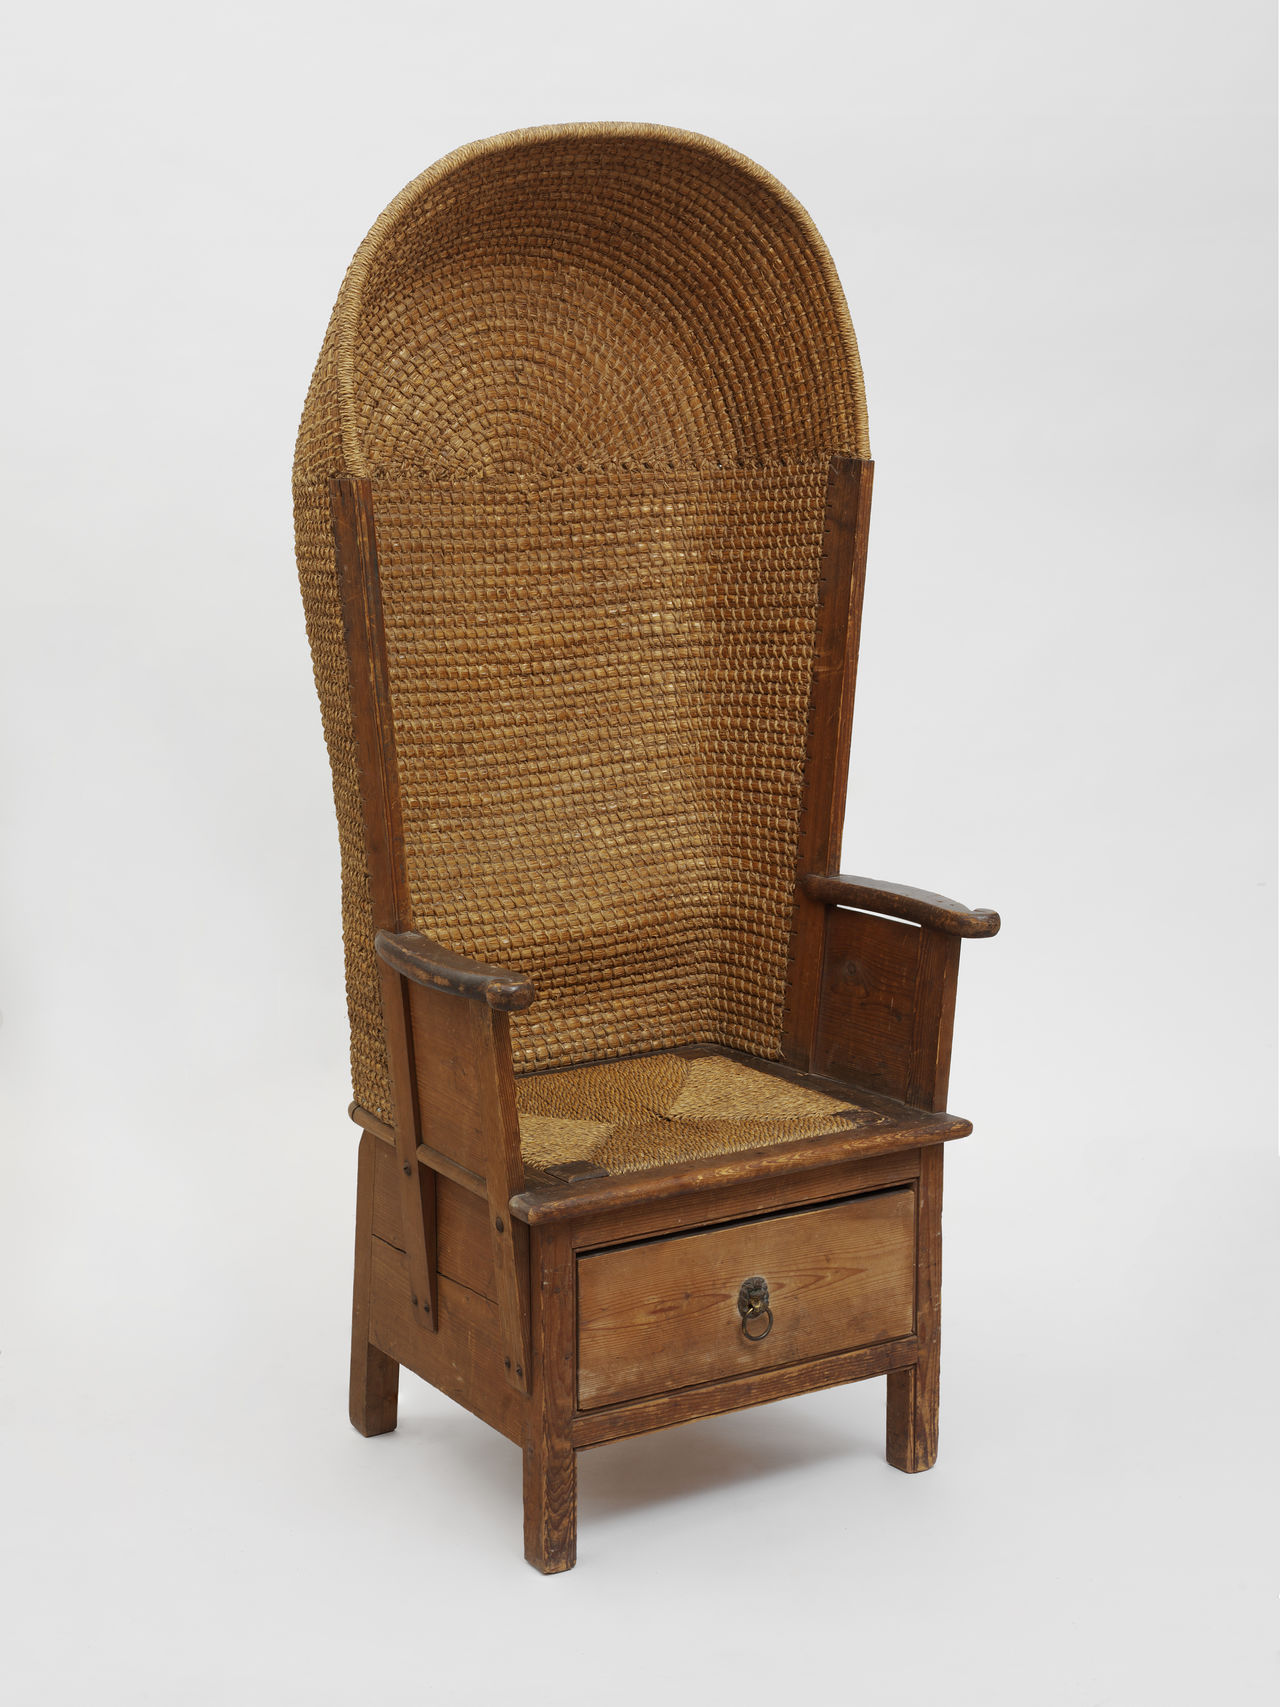 A high-backed, woven Orkney Chair.